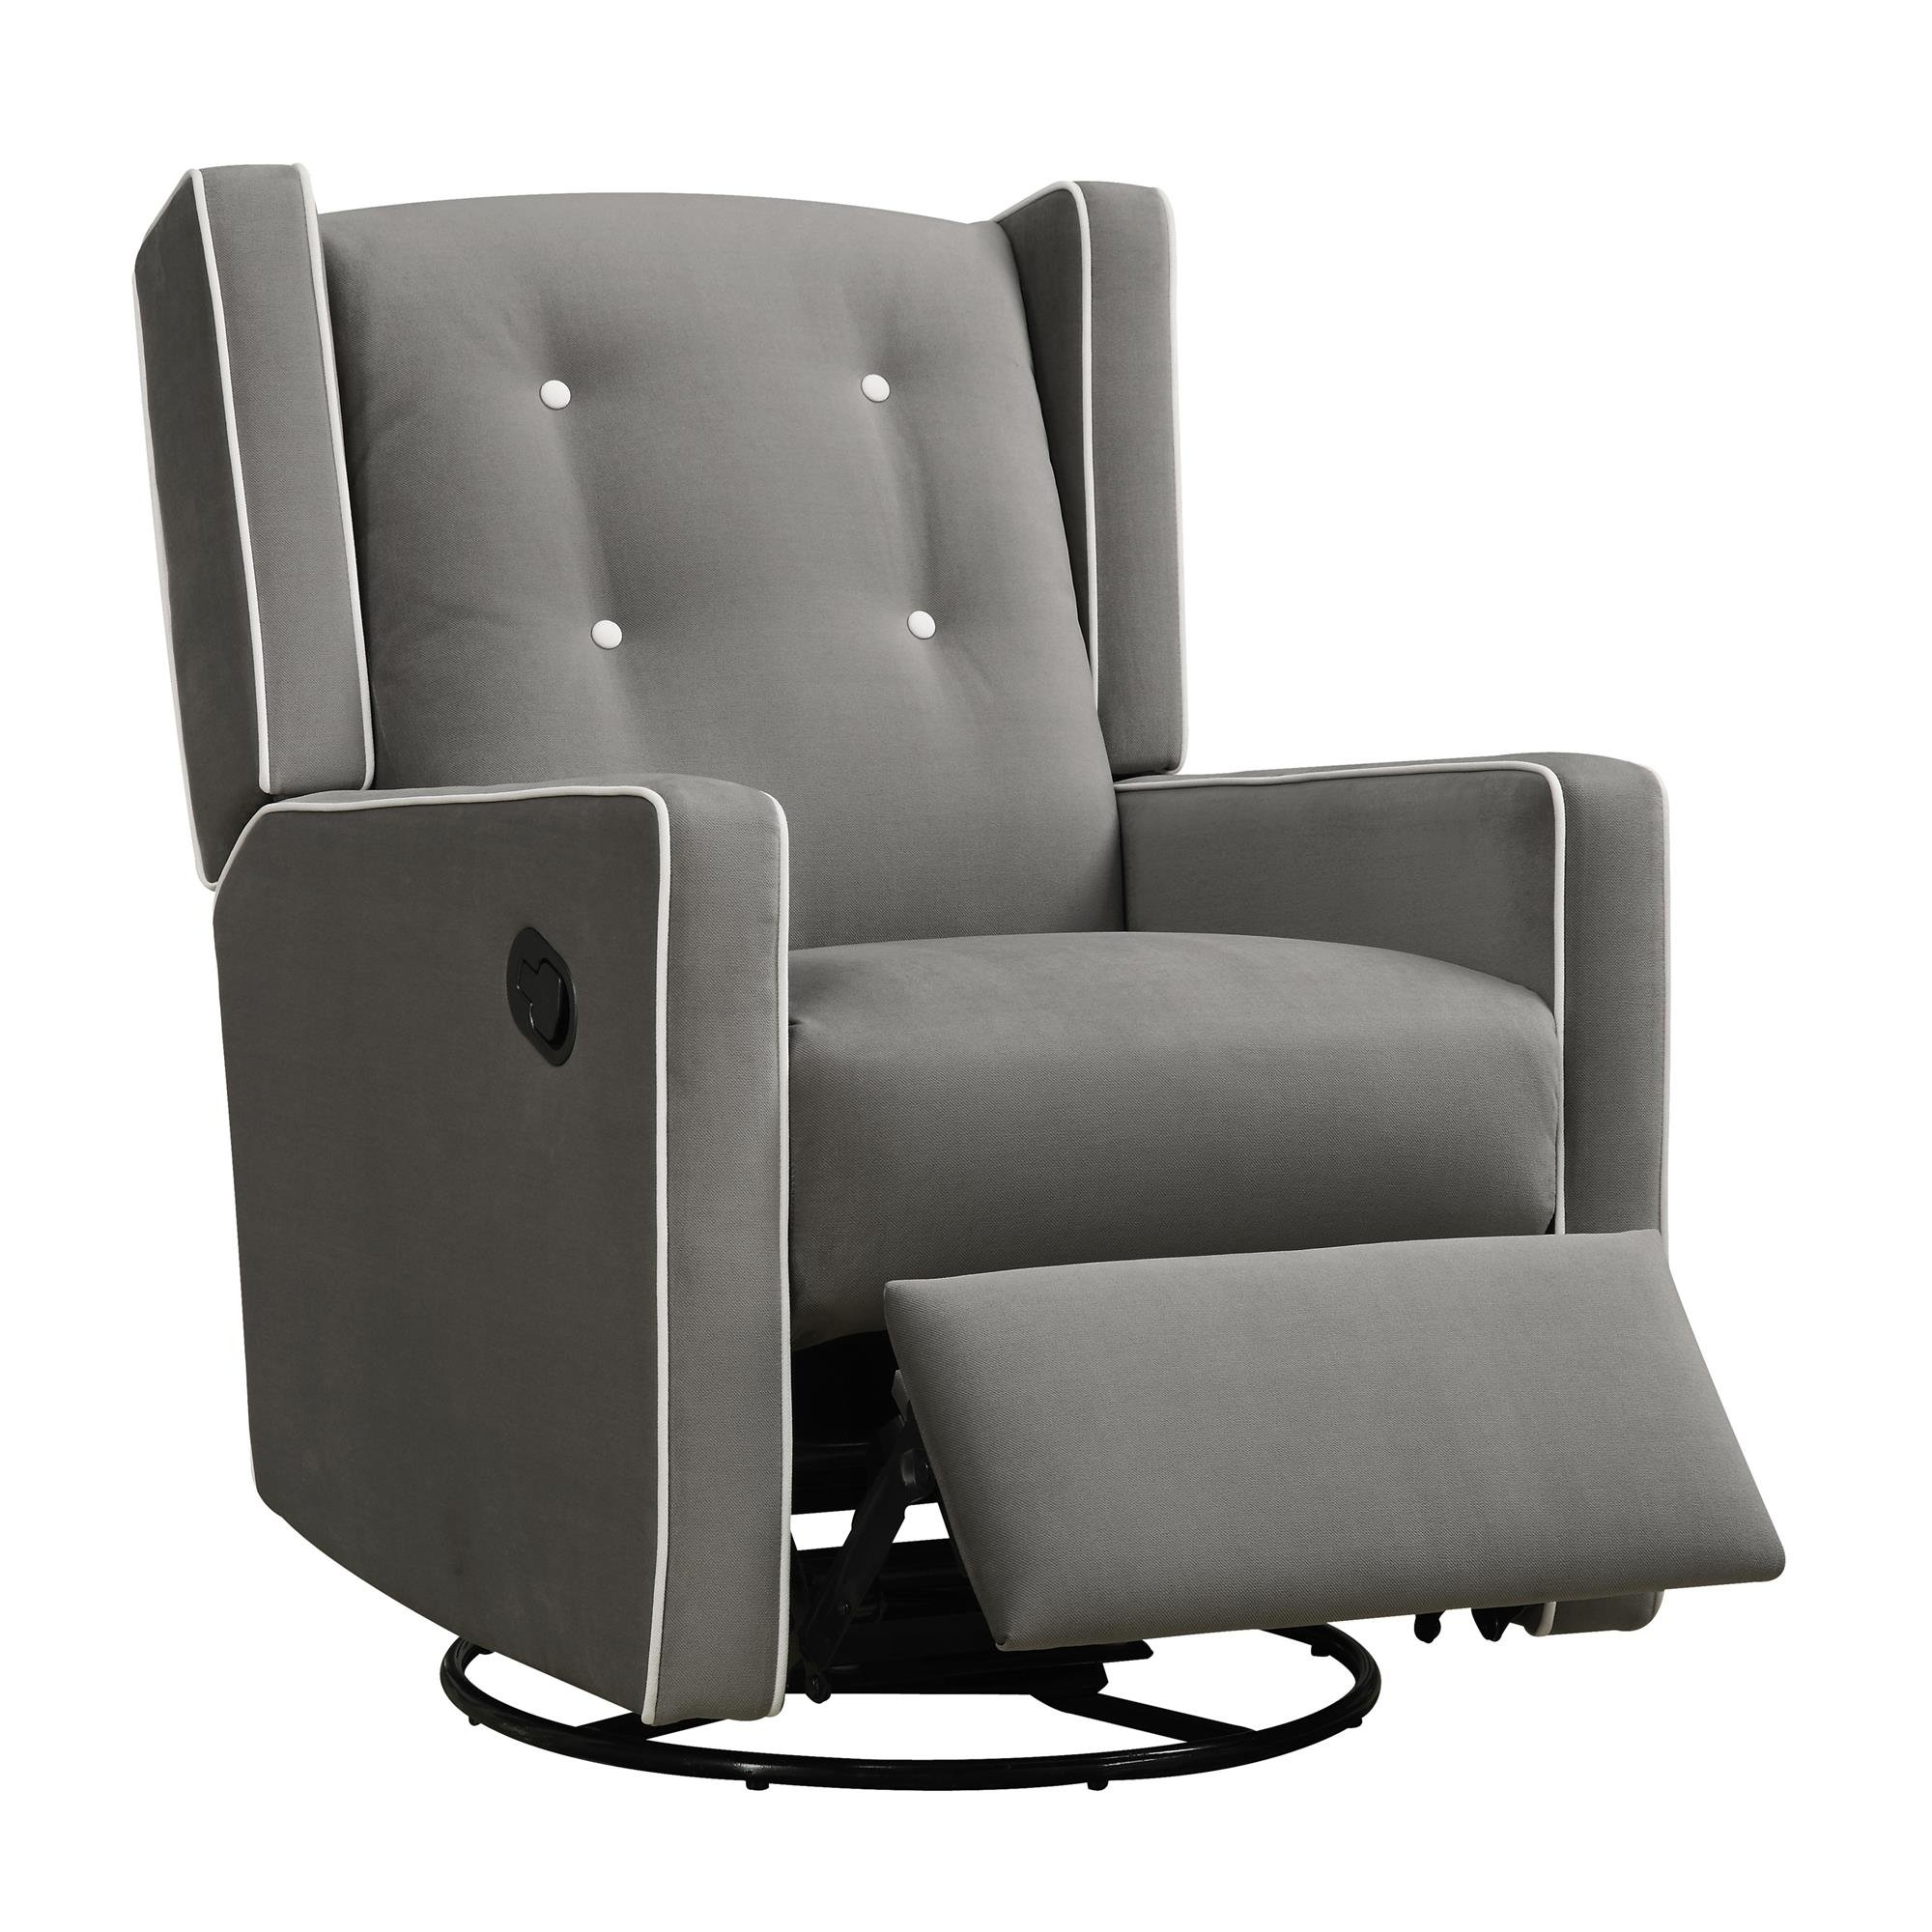 Baby Relax Mikayla Swivel Gliding Recliner, Gray Microfiber by Baby Relax (Image #1)